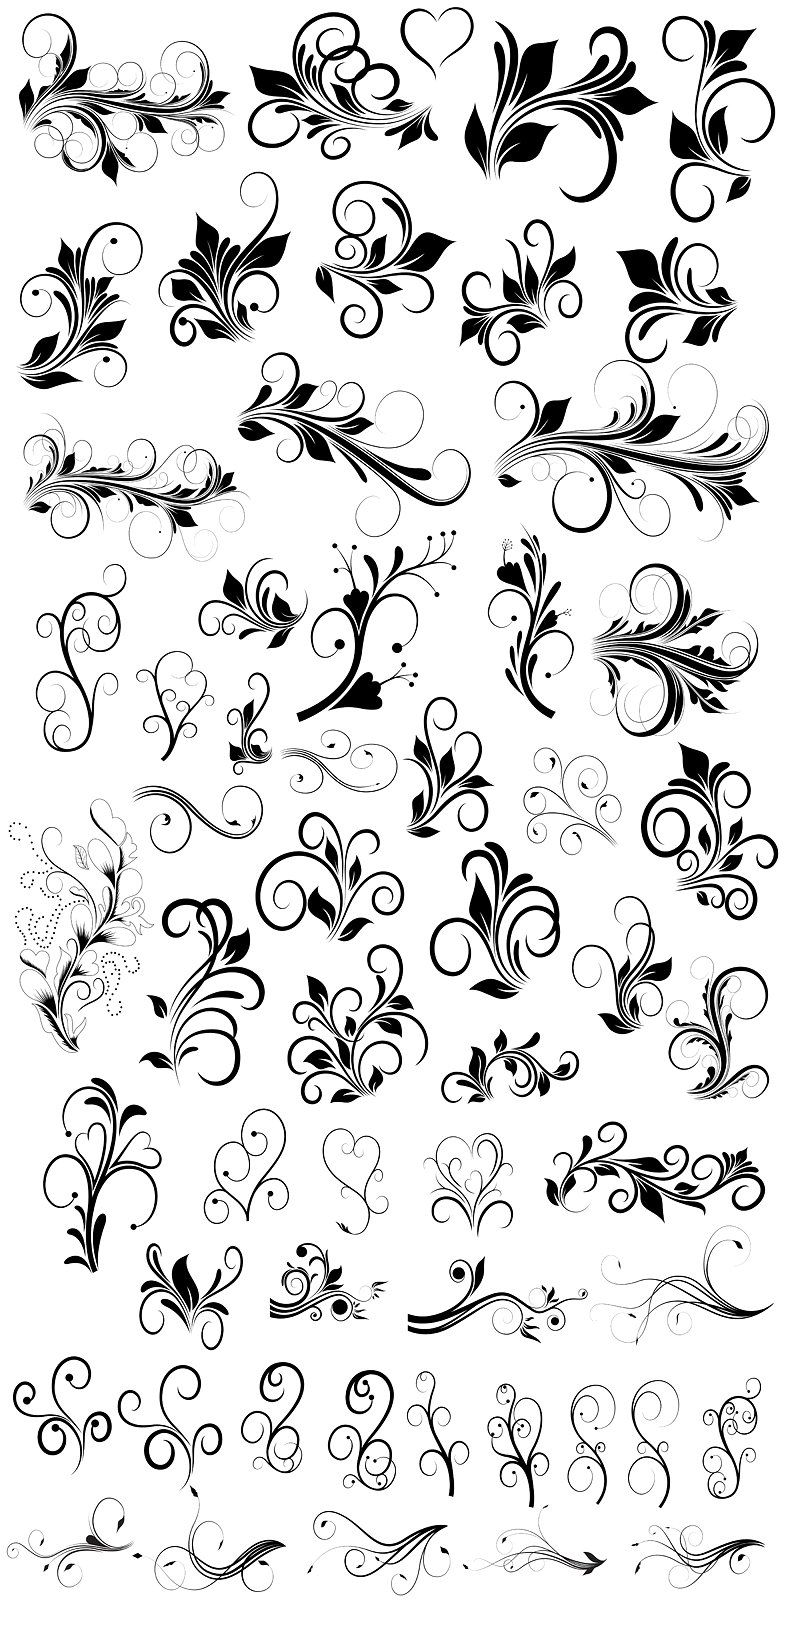 Floral brushes photoshop ai files calligraphy letters flourish tattoo also abstract design poster rh pinterest